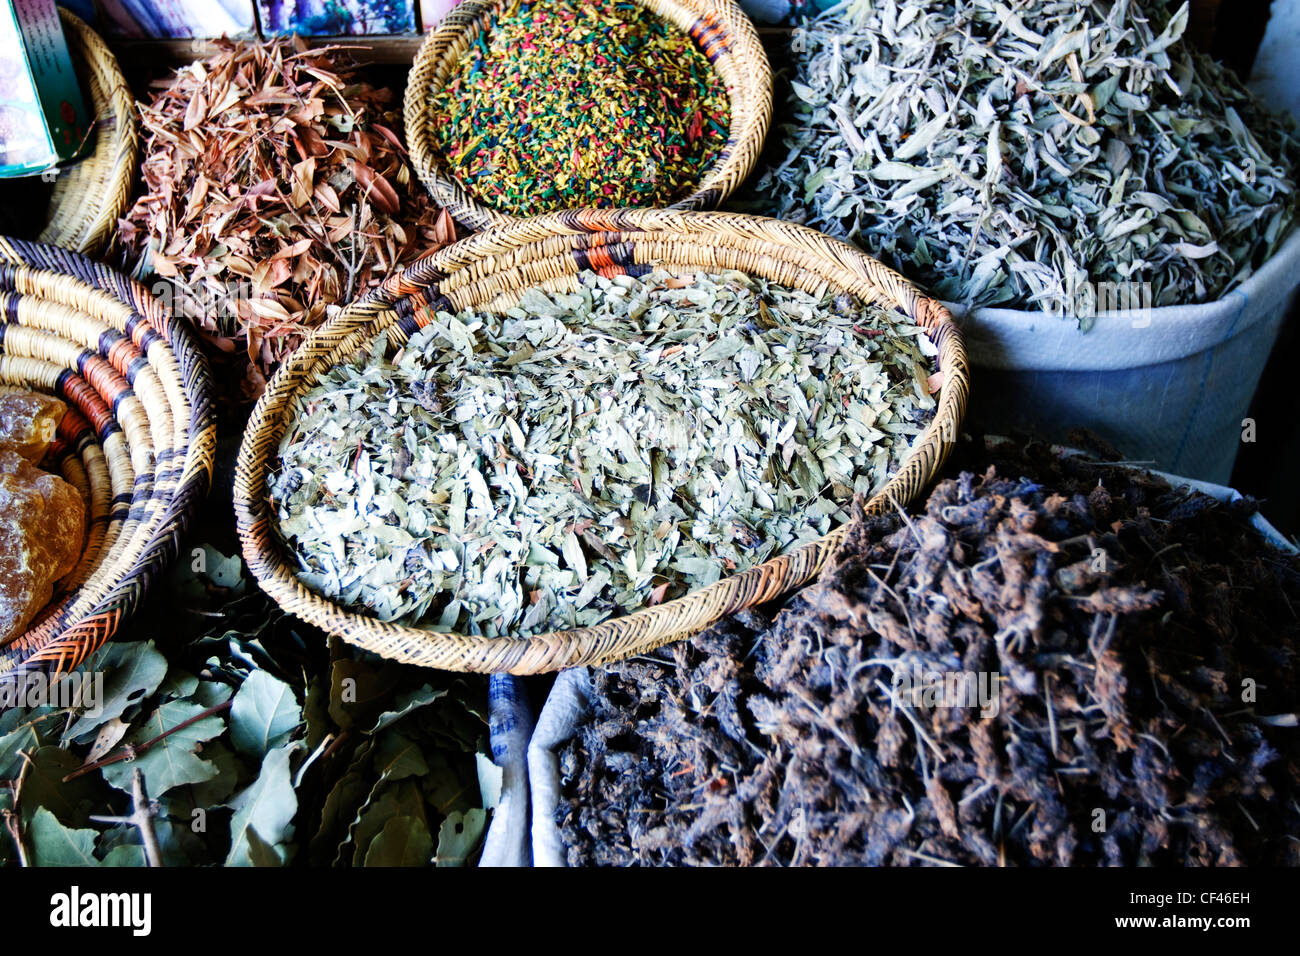 Traditional local herbs and spices in baskets on display outside a shop in Djemaa el-Fna market in Marrakech Morocco Stock Photo